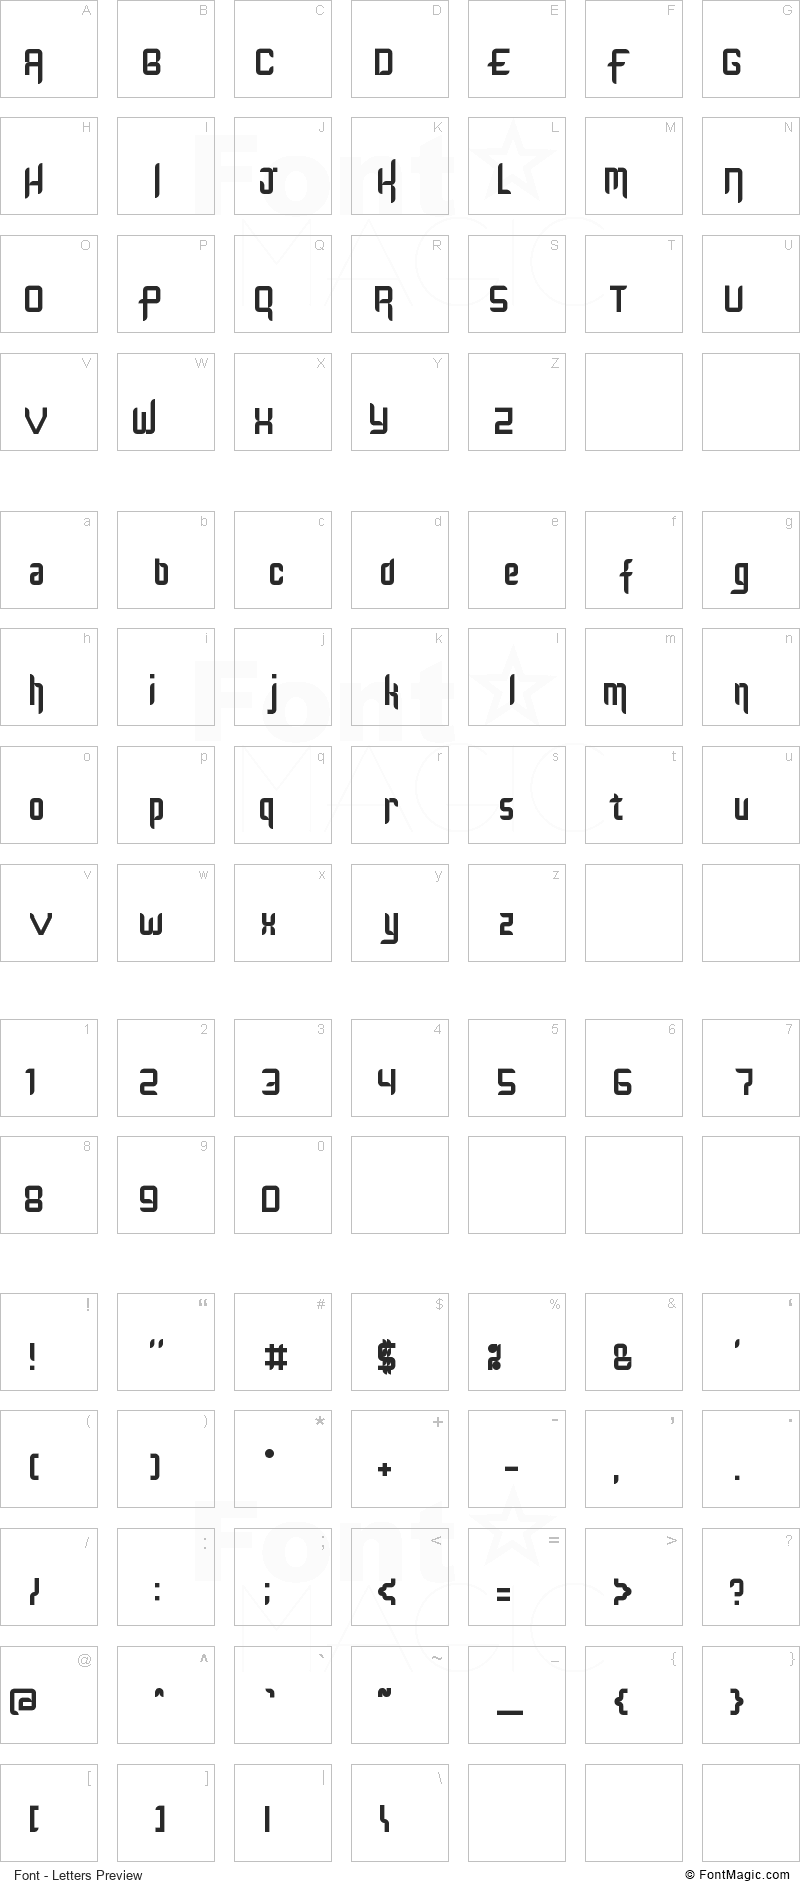 Kinglify Font - All Latters Preview Chart